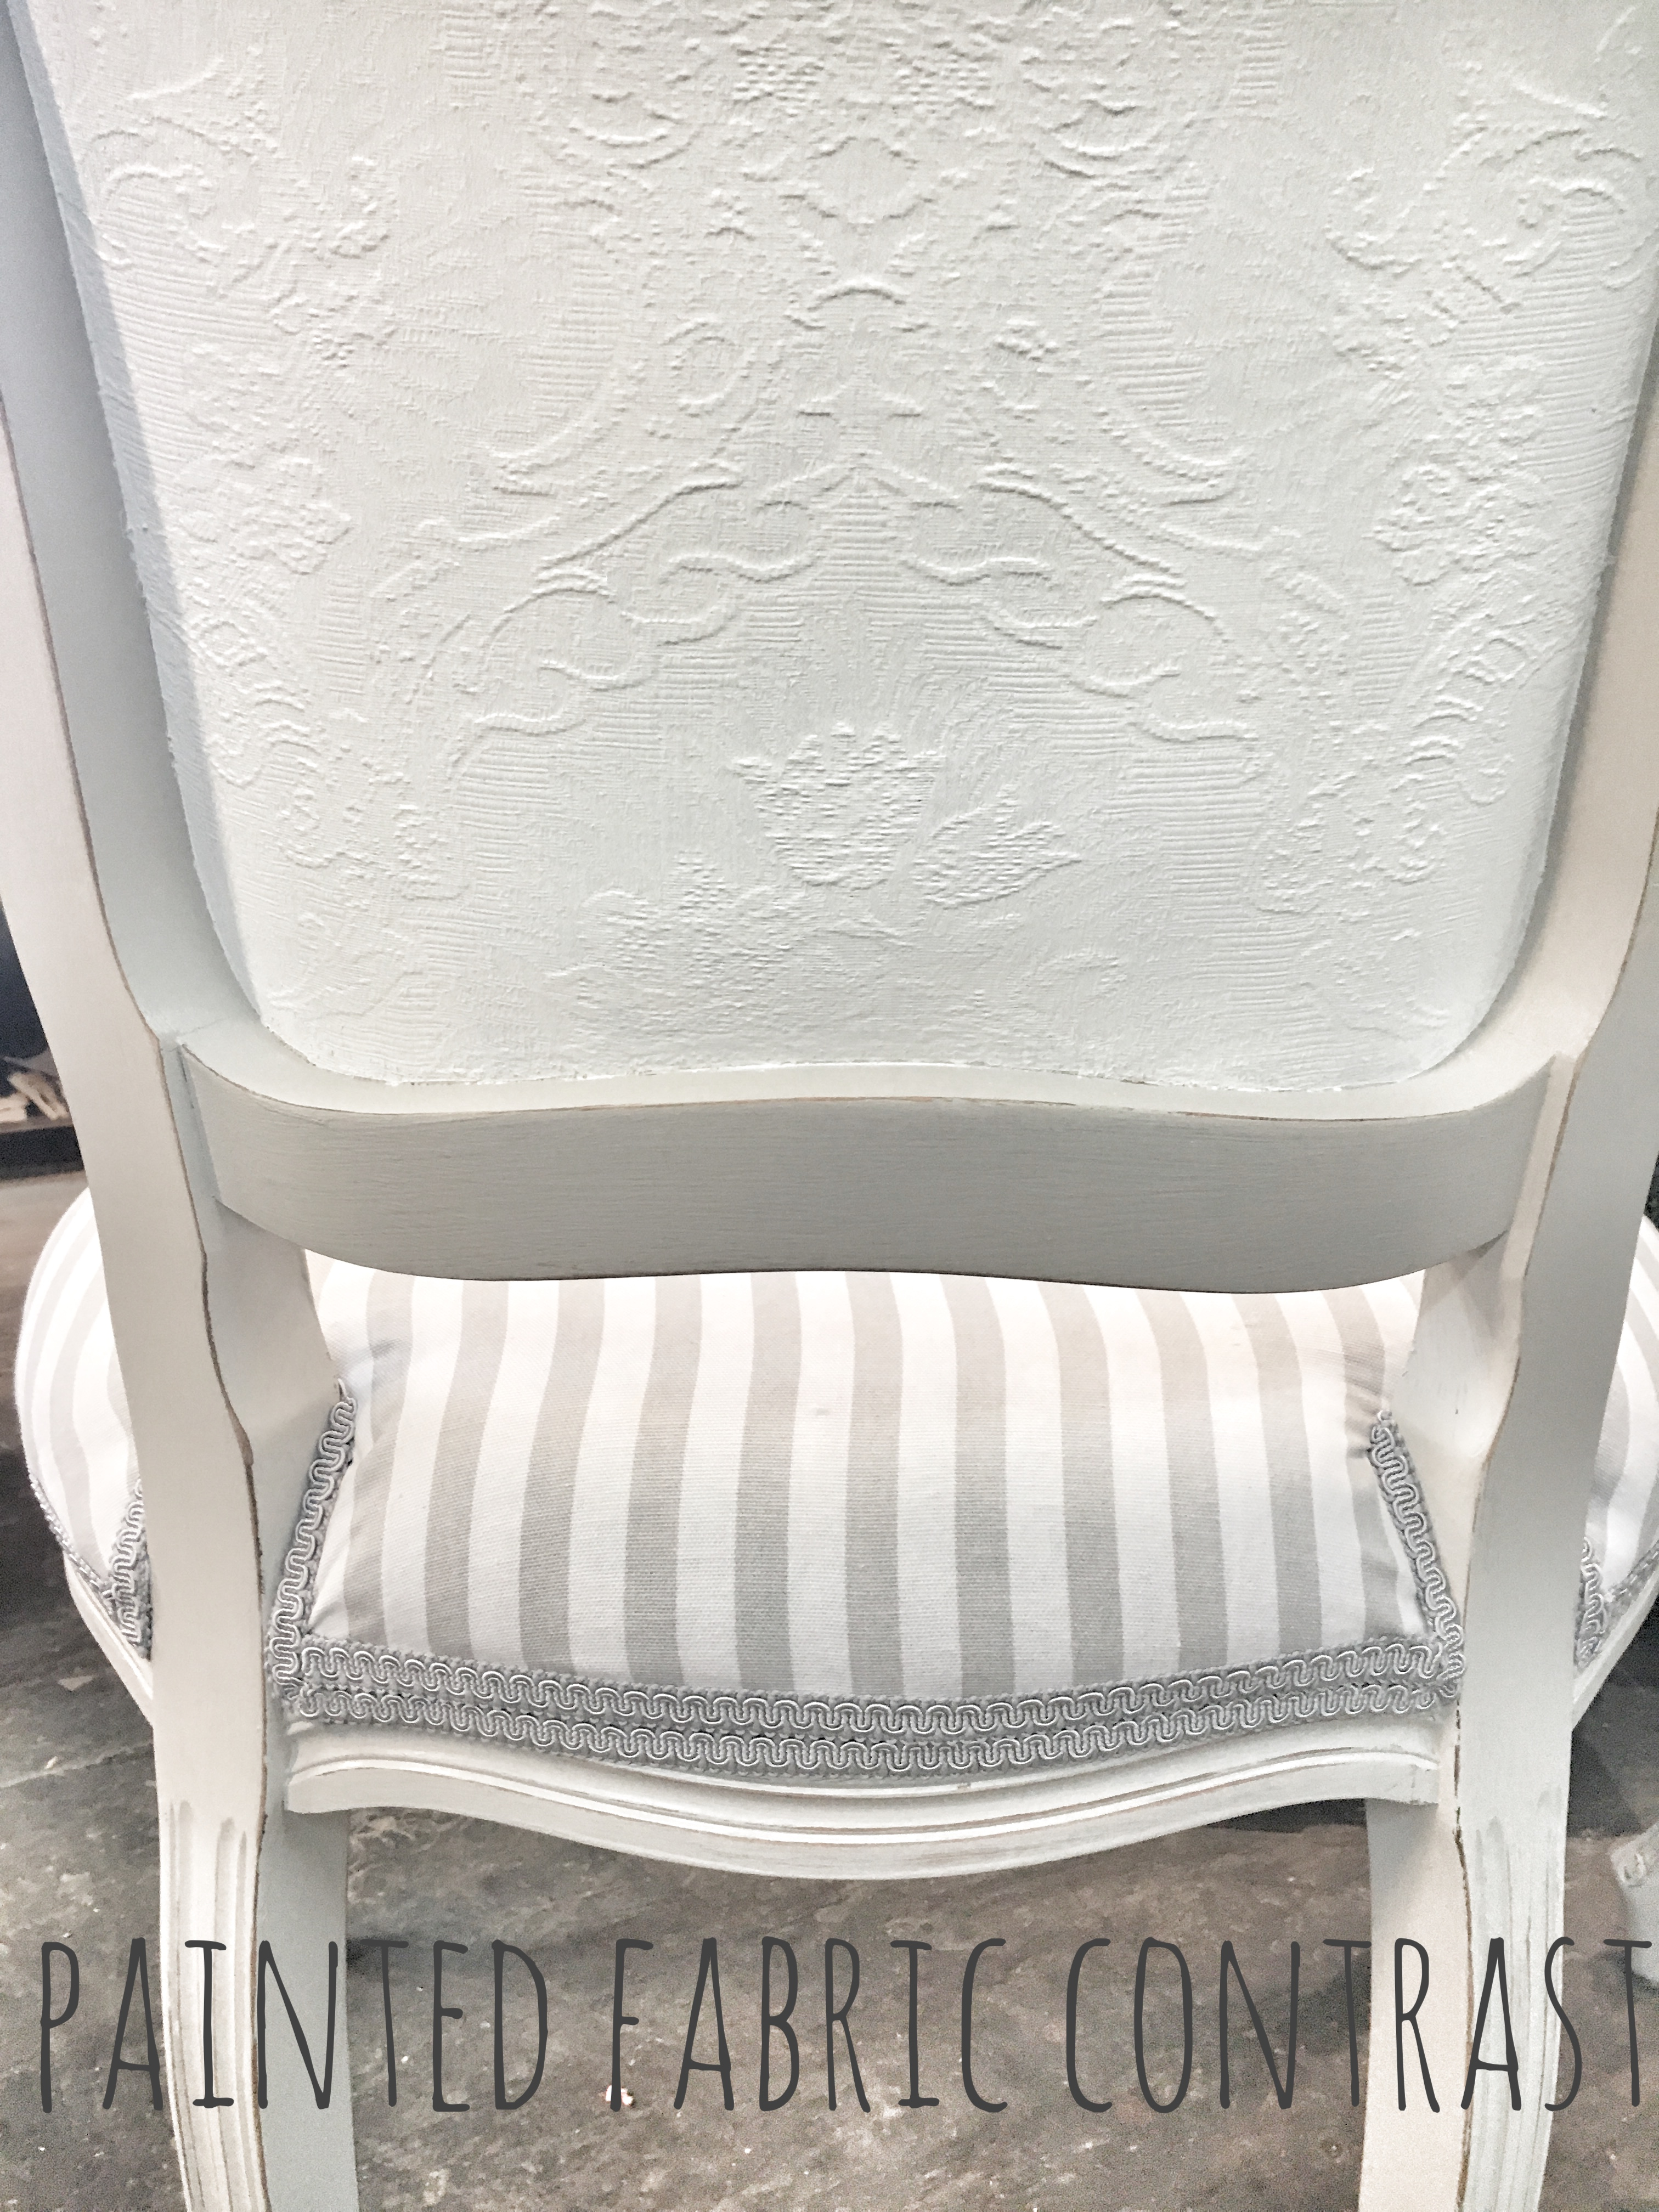 painted fabric contrast, updated chair